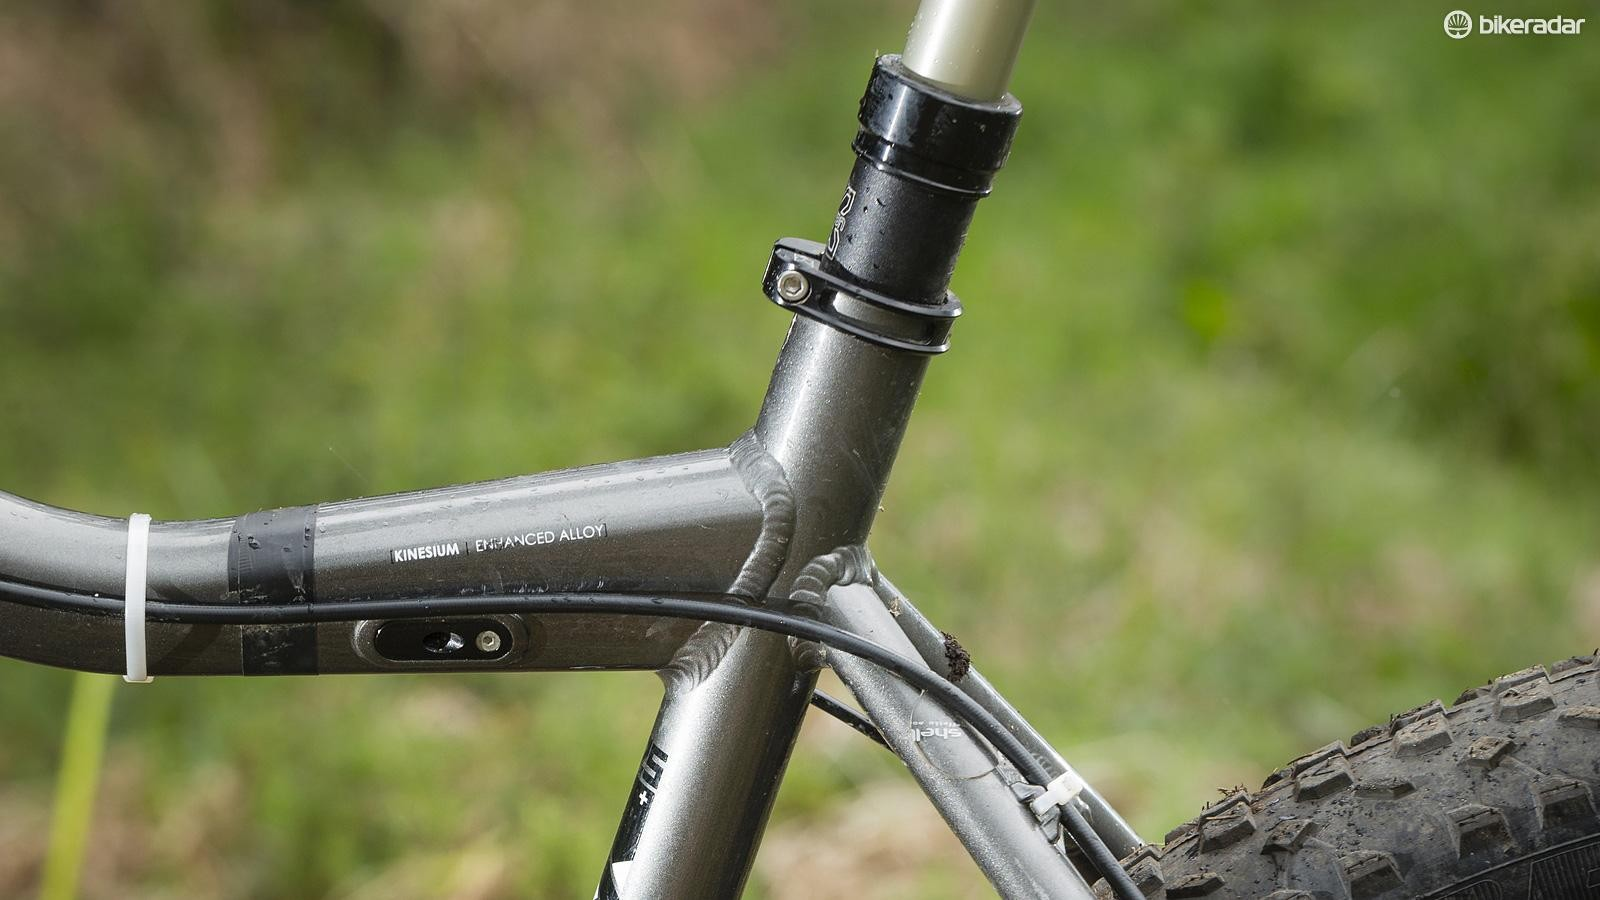 The slack (measured at) 71.5-degree seat angle mean the front wheel can be hard to keep grounded on climbs